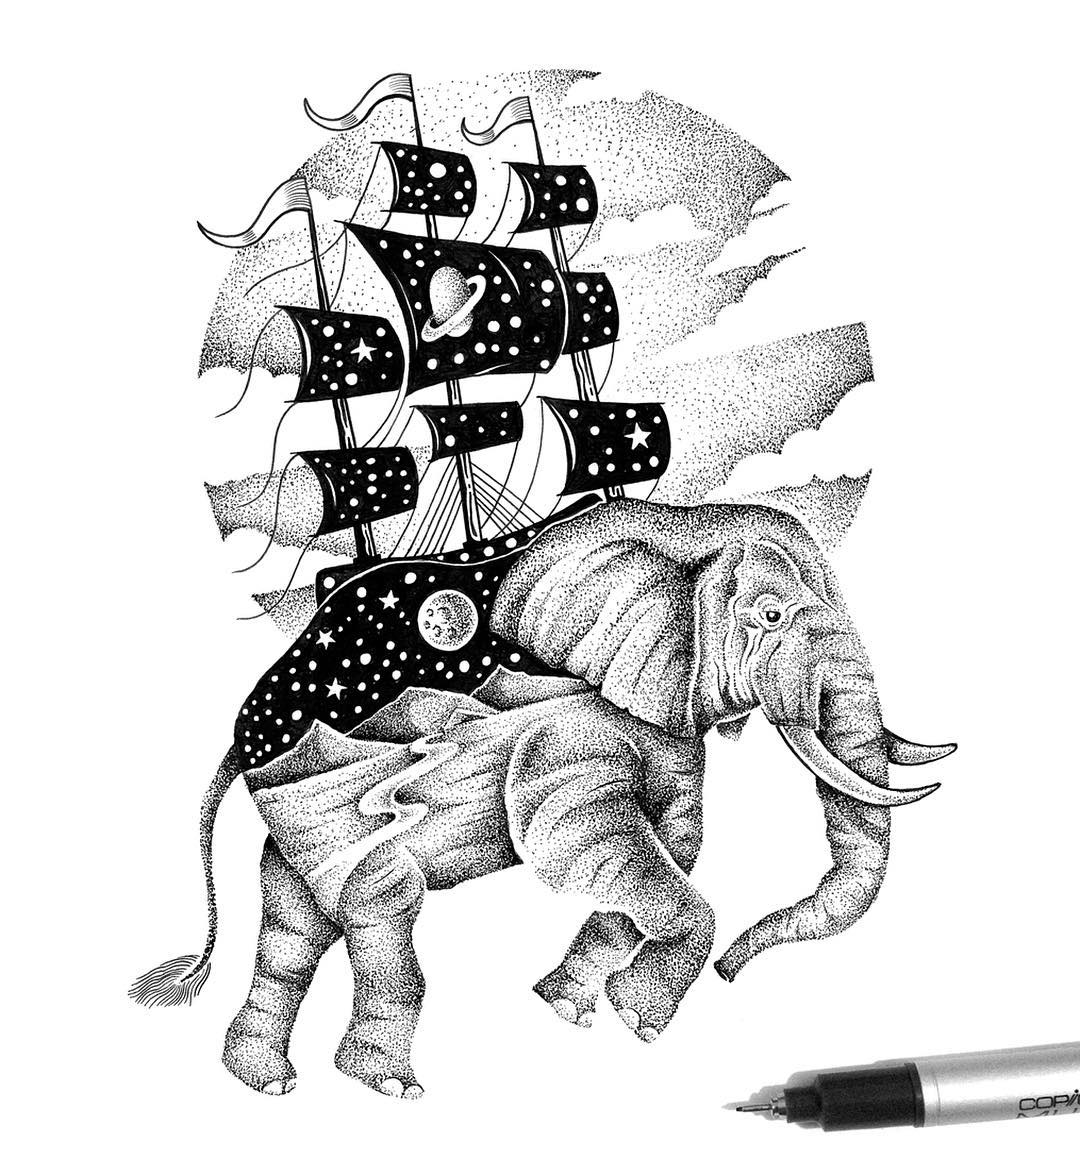 22-Flying-Elephant-and-Ship-Thiago-Bianchini-Eclectic-Collection-of-Drawings-and-Illustrations-www-designstack-co